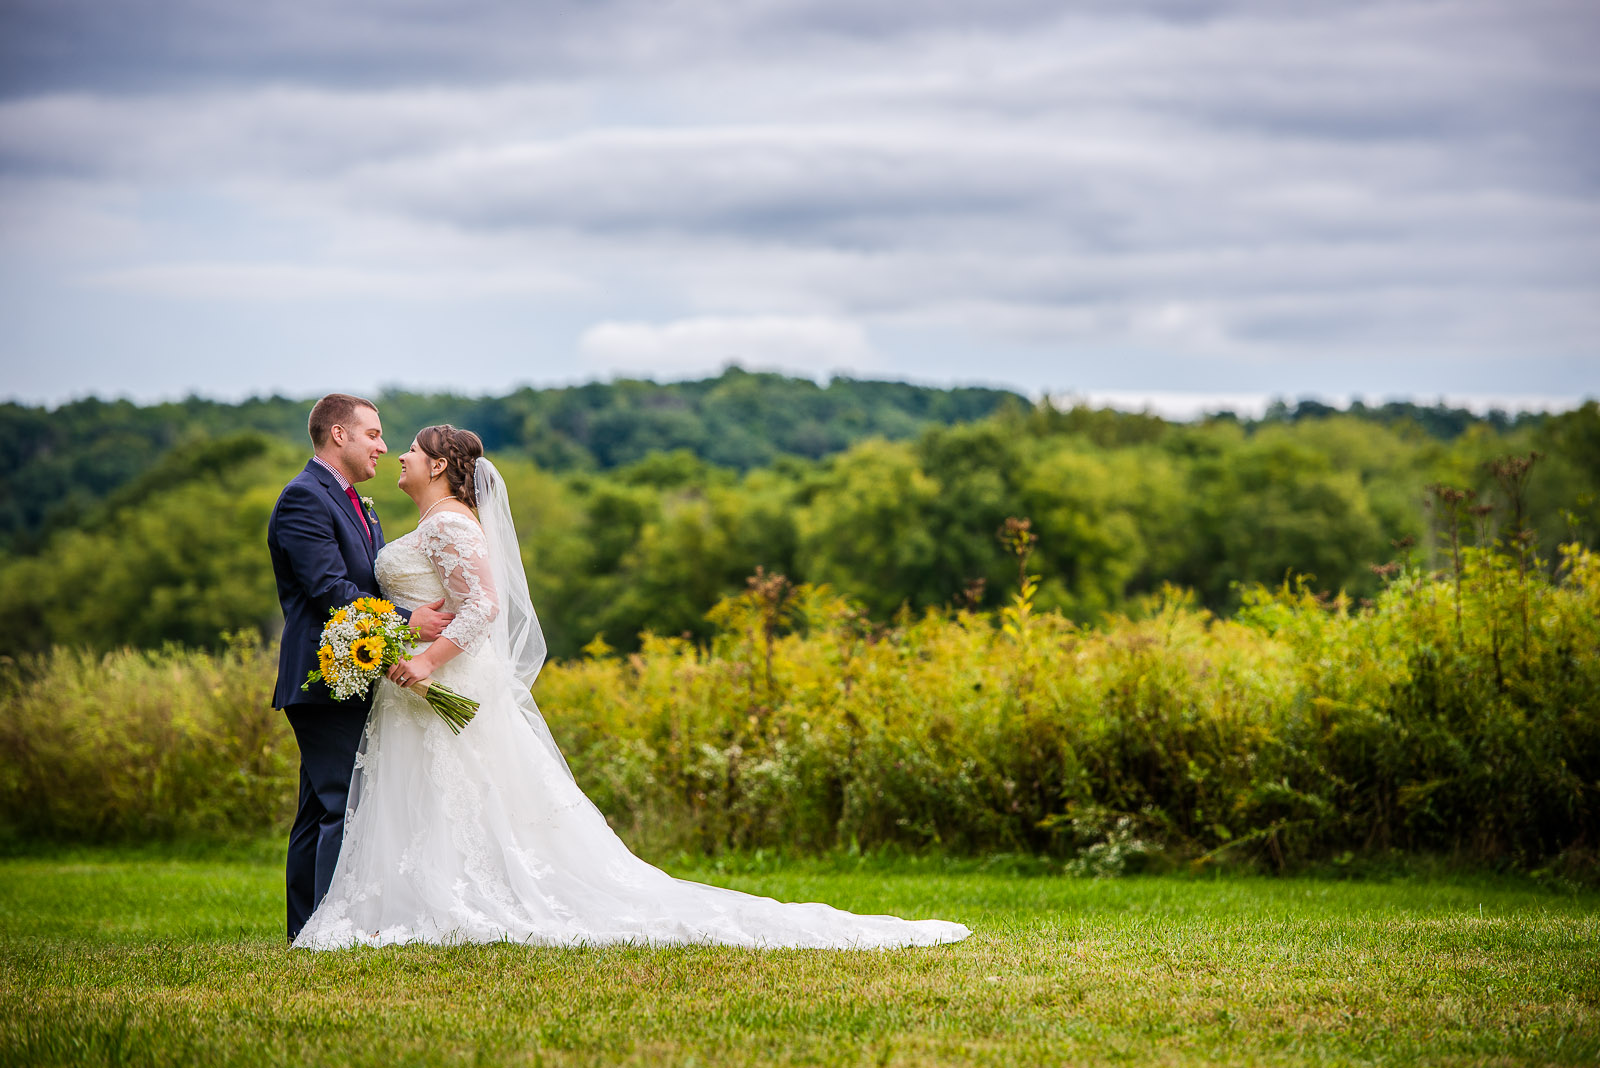 Eric_and_Christy_Photography_Blog_Wedding_Stacey_Geoff-53